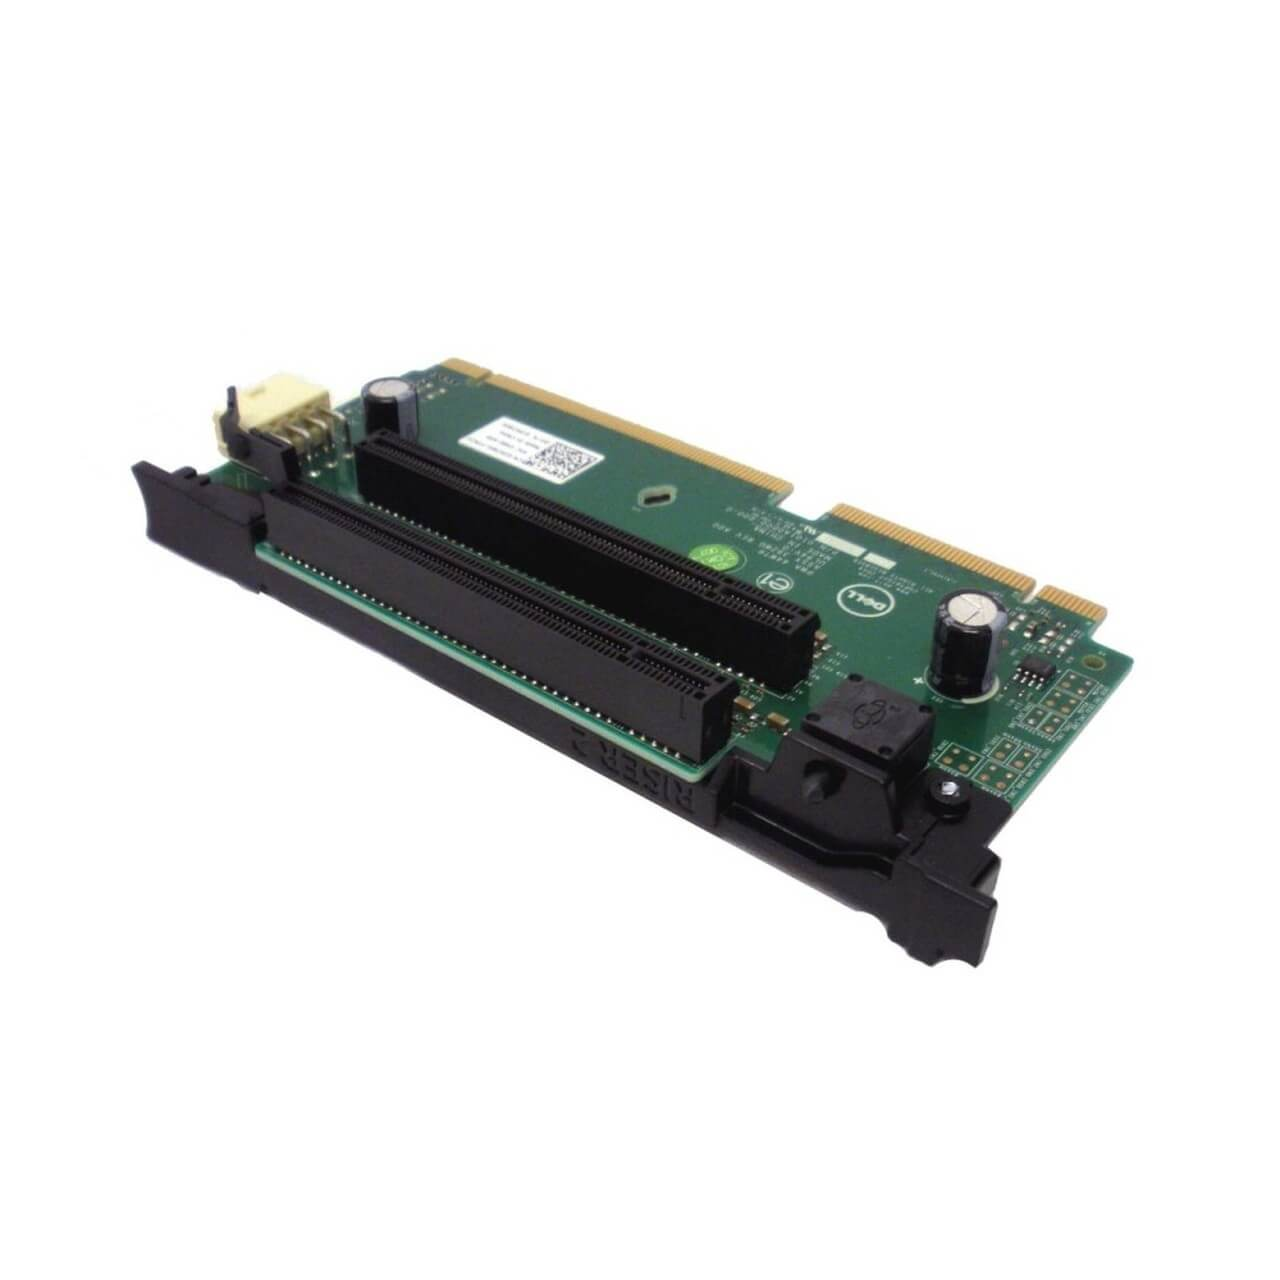 Buy & save on genuine brand name Server Riser Boards from your trusted partners at Flagship Technologies.